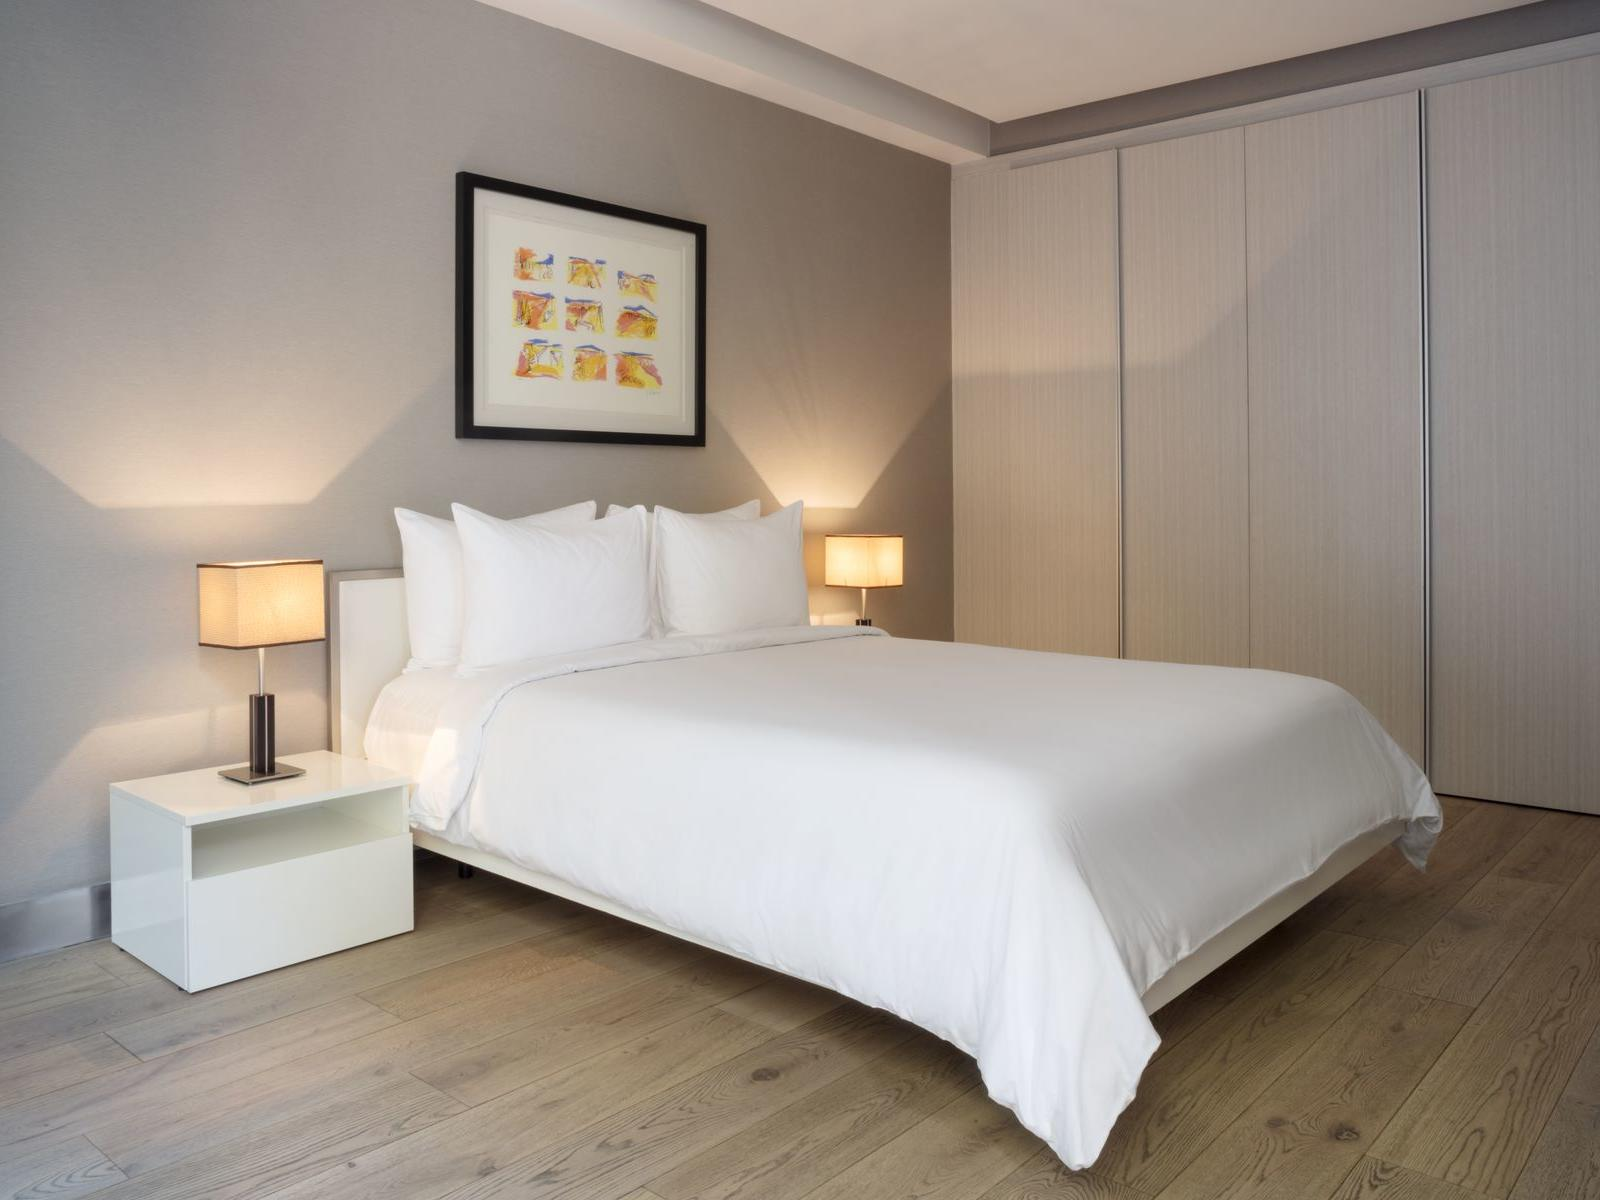 bed with white sheets in cozy room with wooden floors